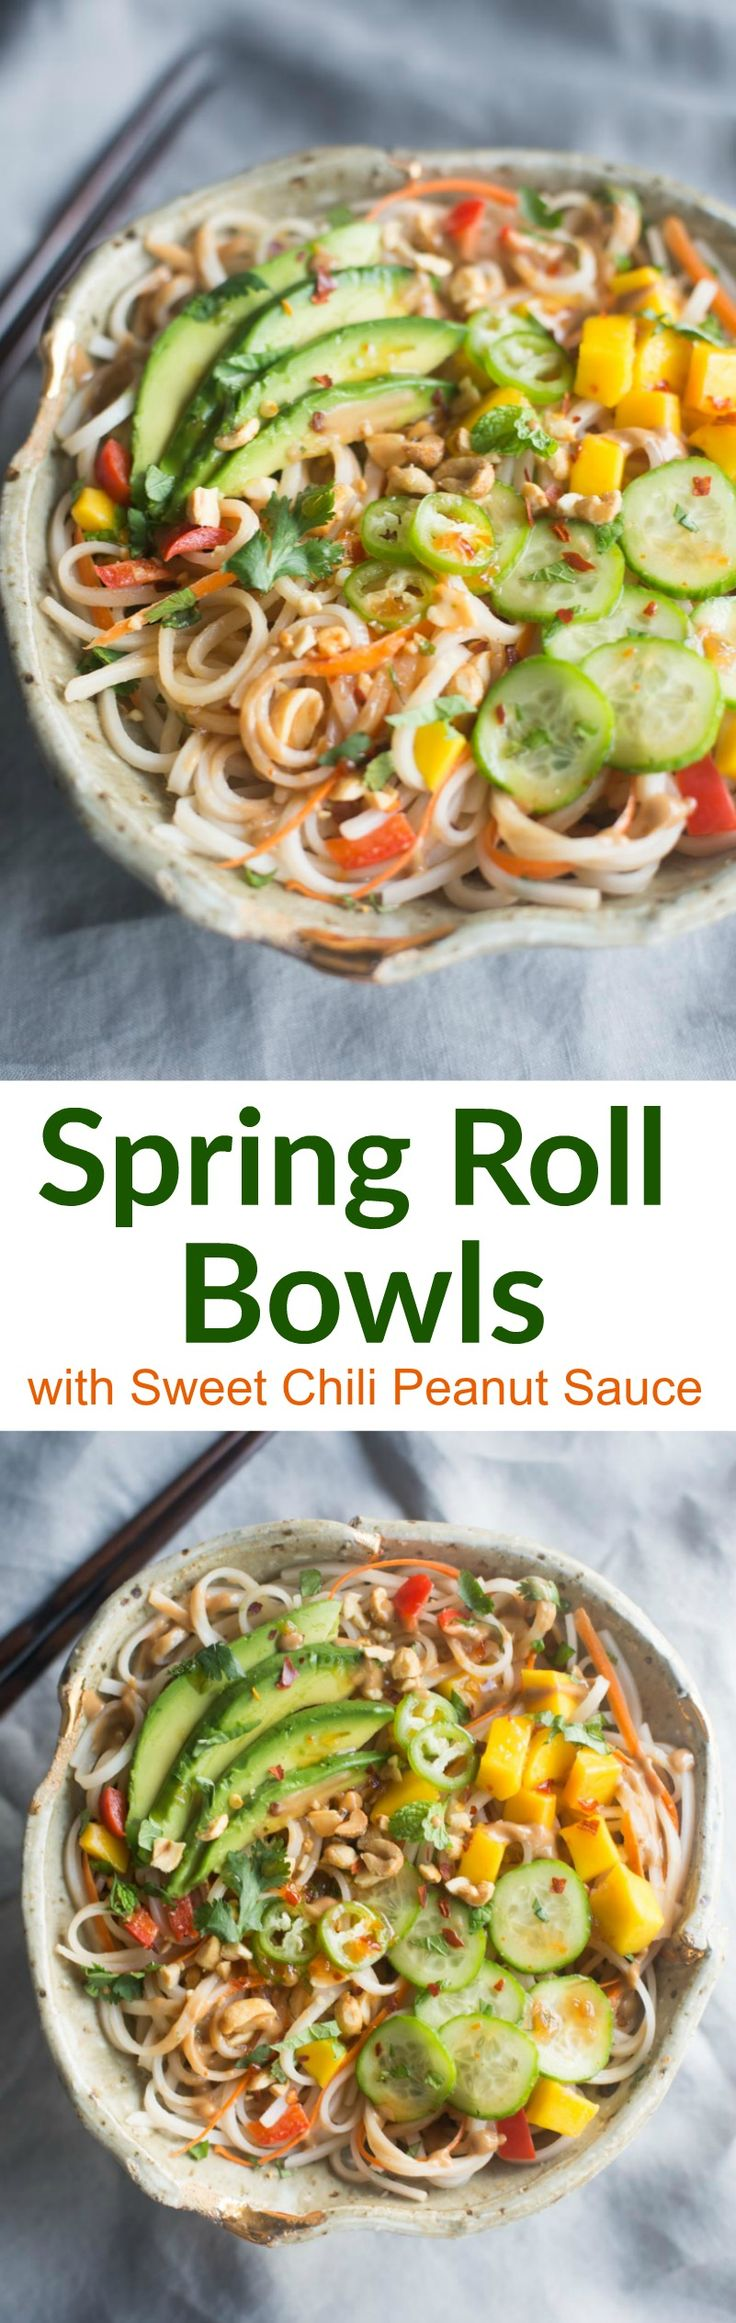 All of the flavor you love from fresh spring rolls, transformed into delicious Spring Roll Bowls with Sweet Chili Peanut Sauce.| Tastes Better From…